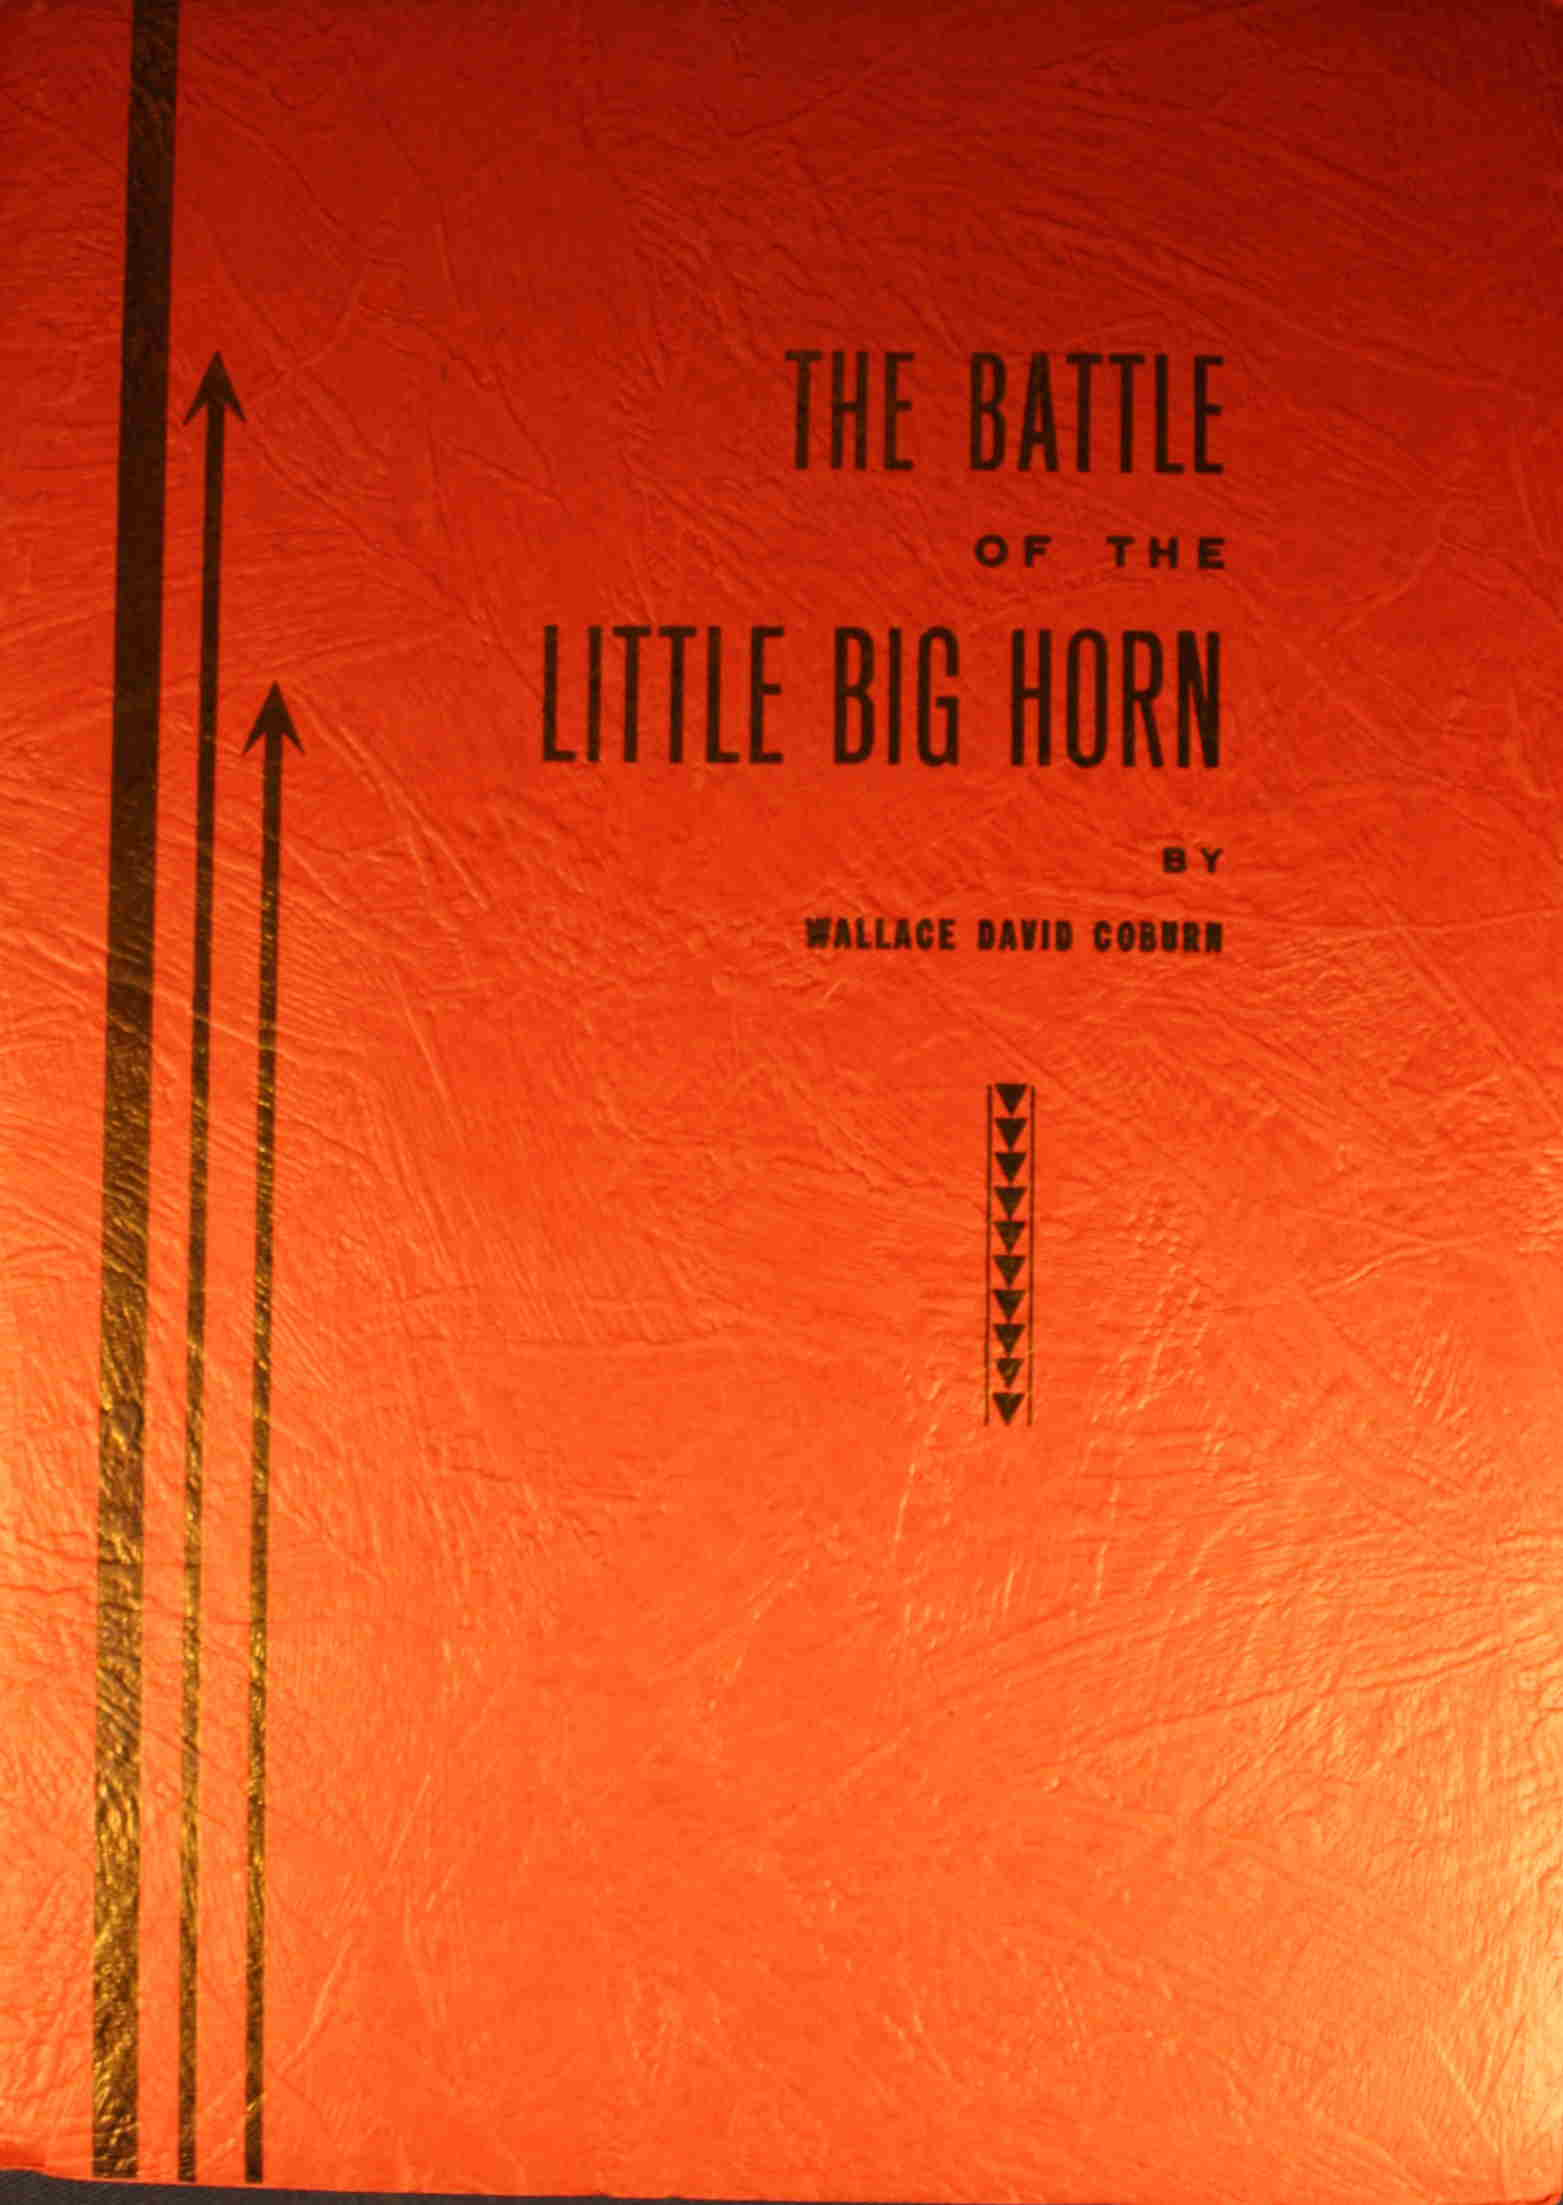 Image for The Battle of the Little Big Horn Illustrated by W. L. Stephenson